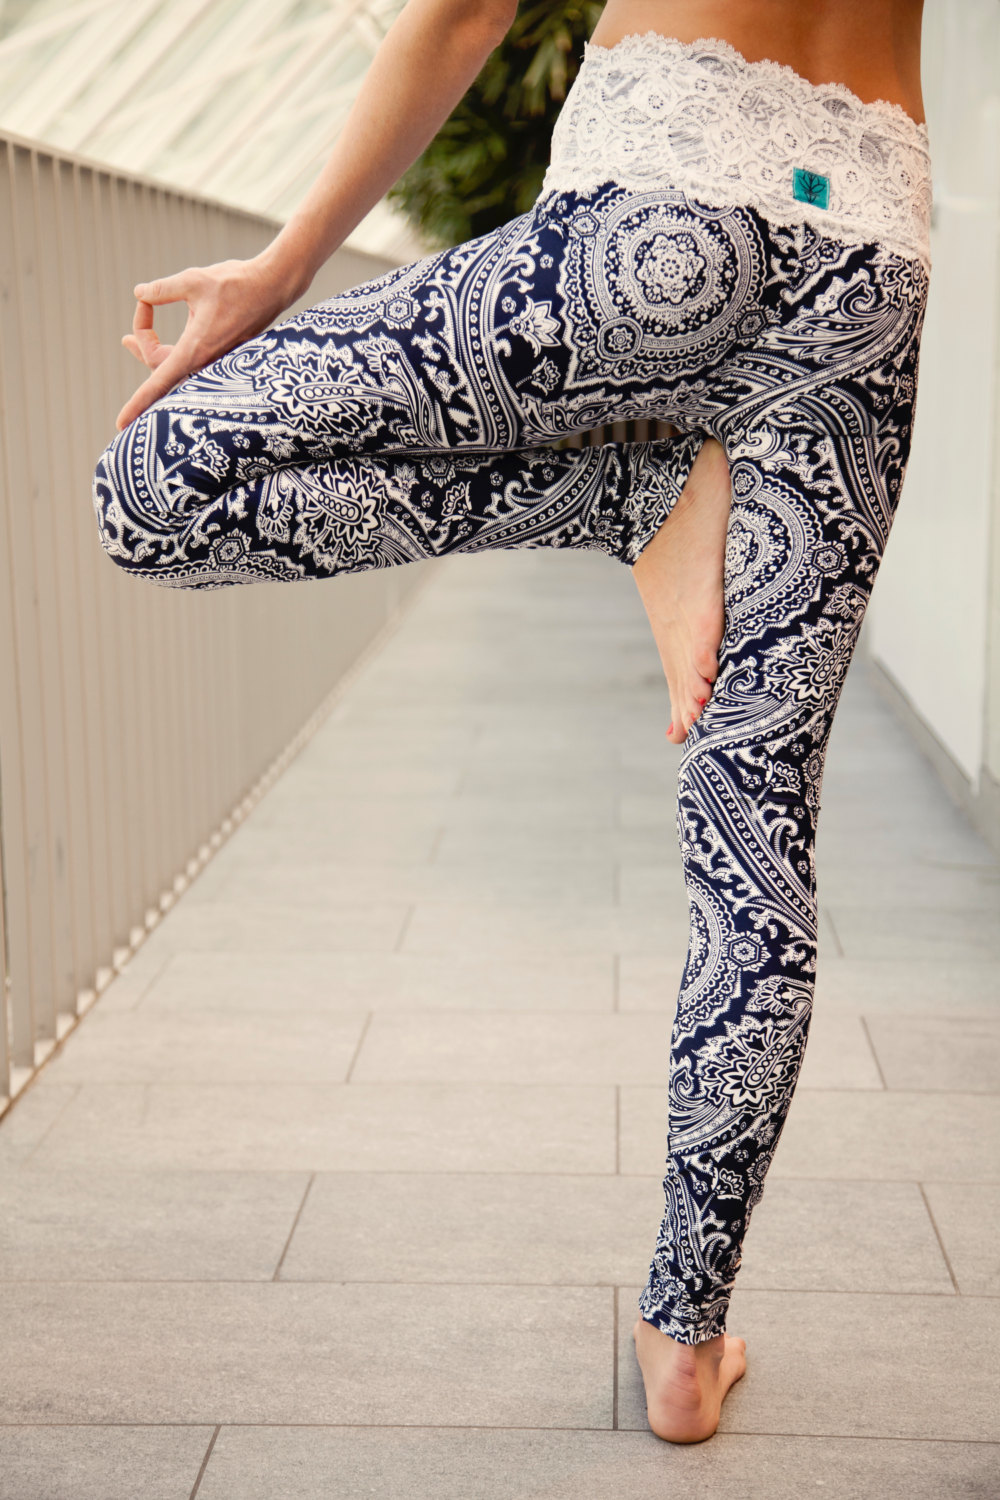 Waist yoga leggings